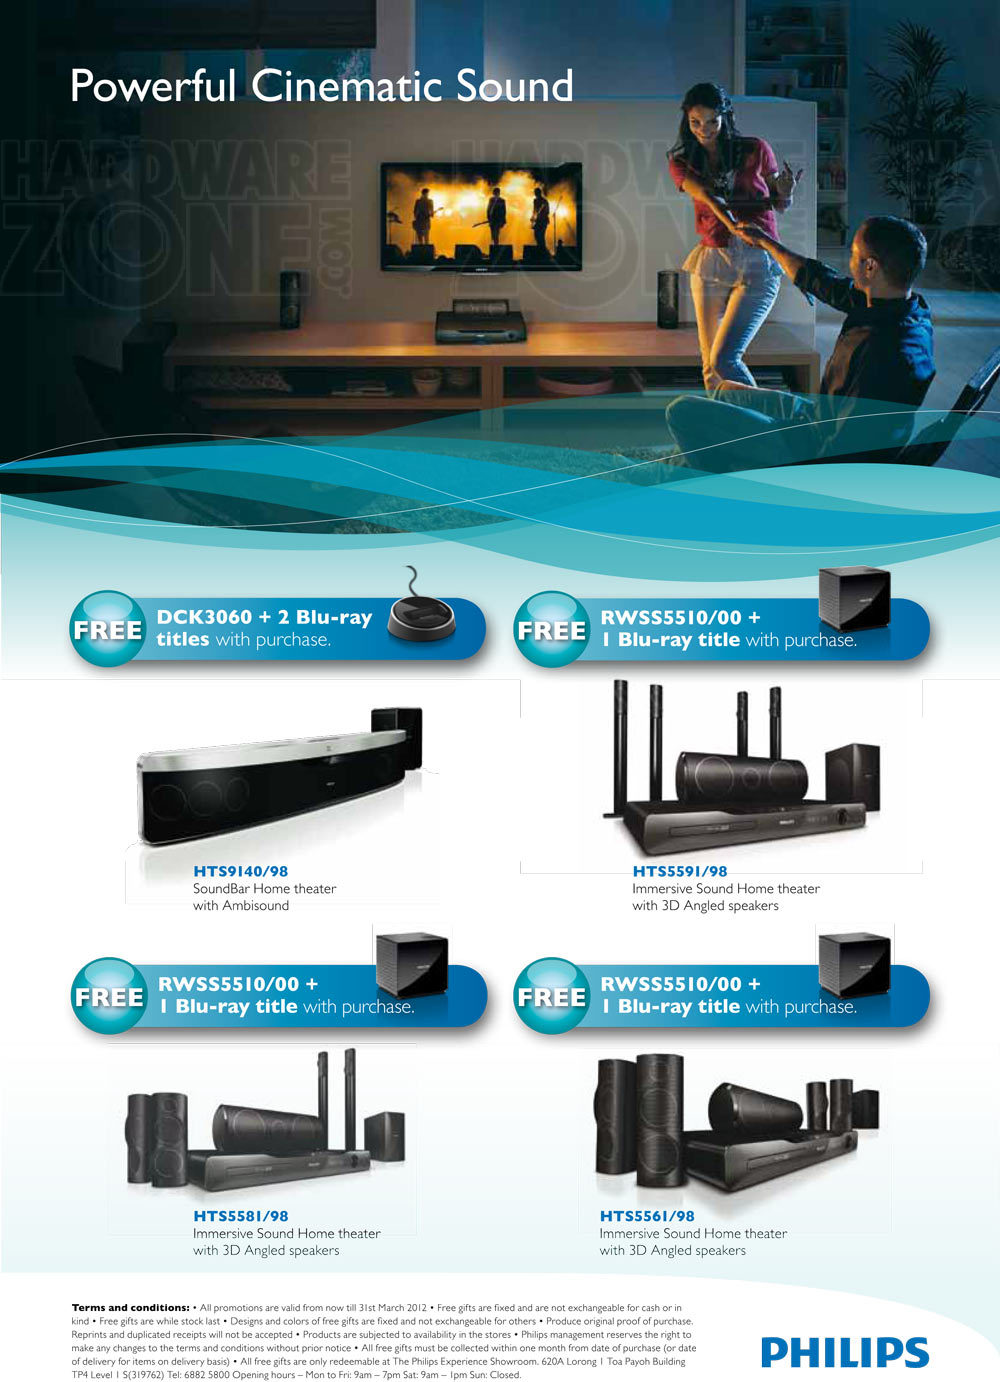 Philips Home Theater Systems - Page 1 Brochures from IT Show 2012 ...